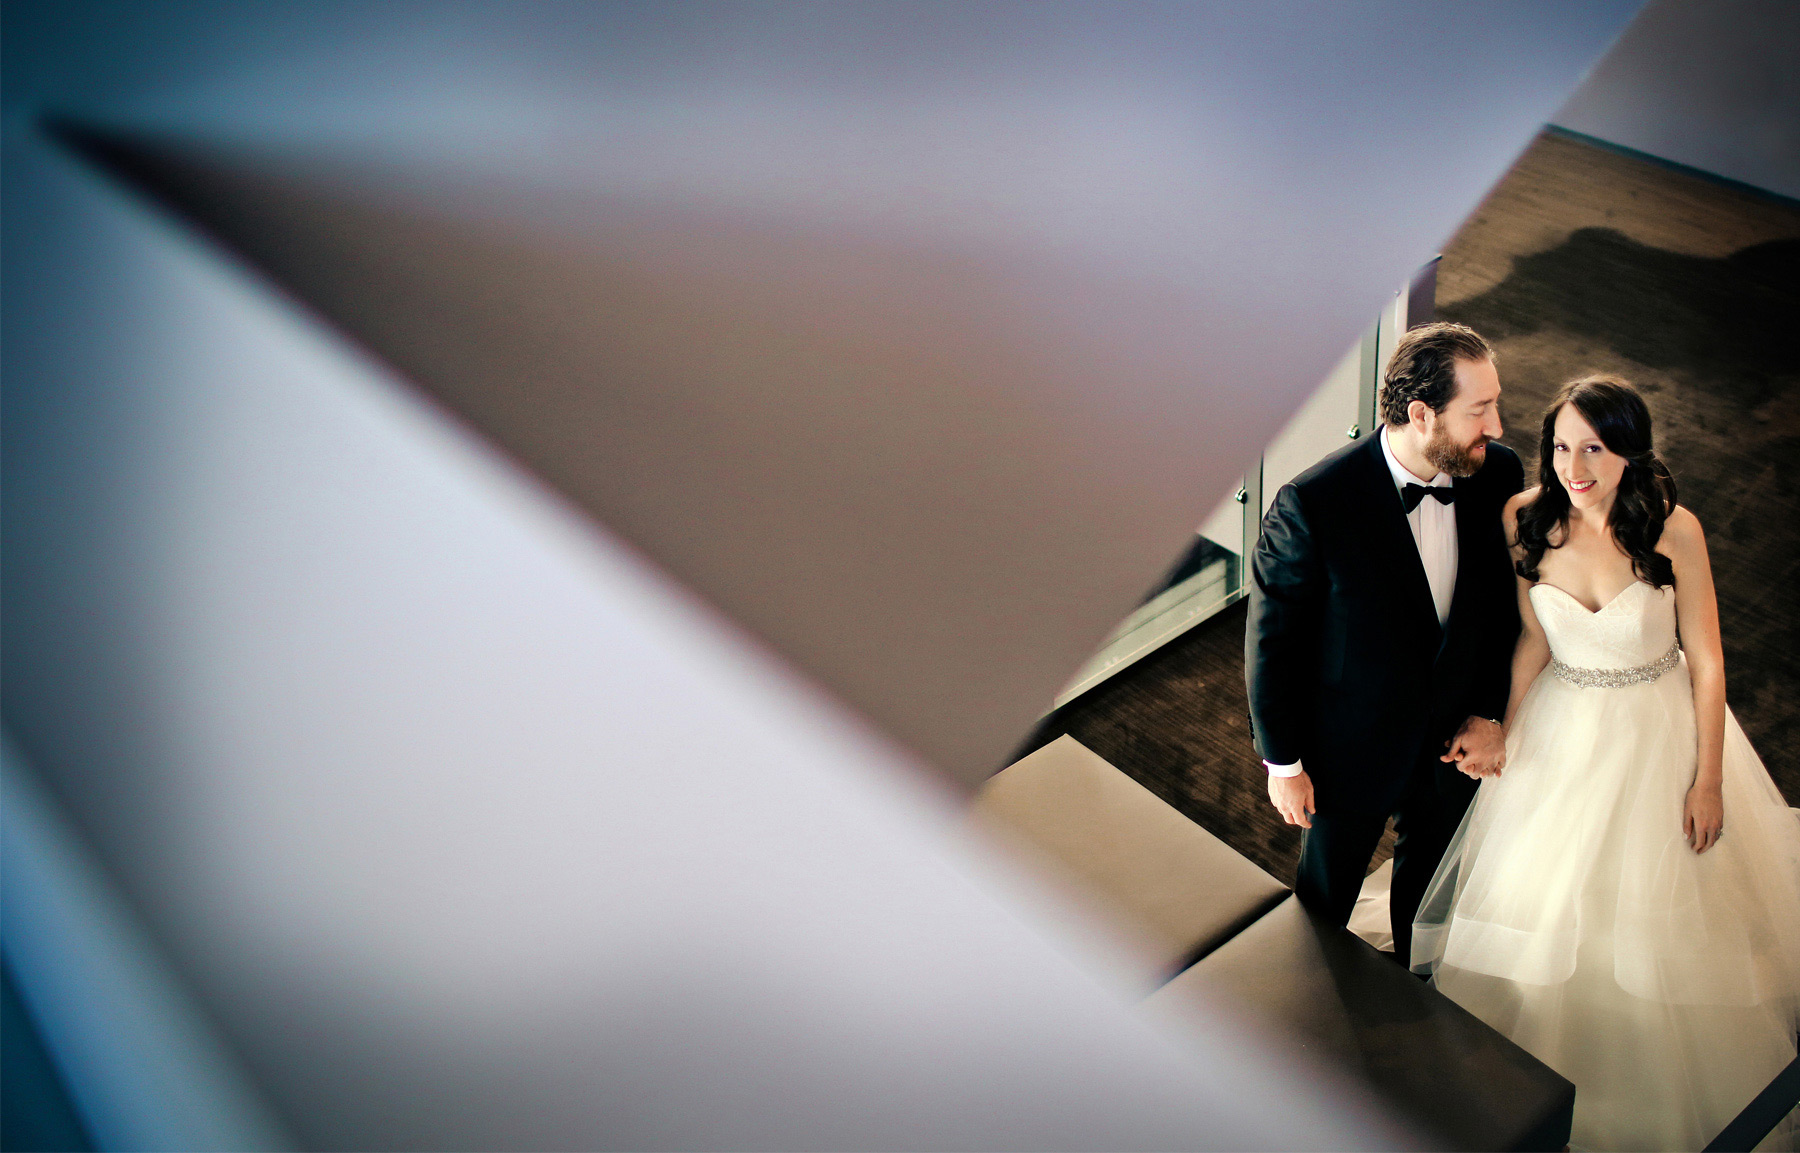 03-Minneapolis-Minnesota-Wedding-Photography-by-Vick-Photography-Hilton-Downtown-First-Look-Vintage-Lisa-and-Jared.jpg